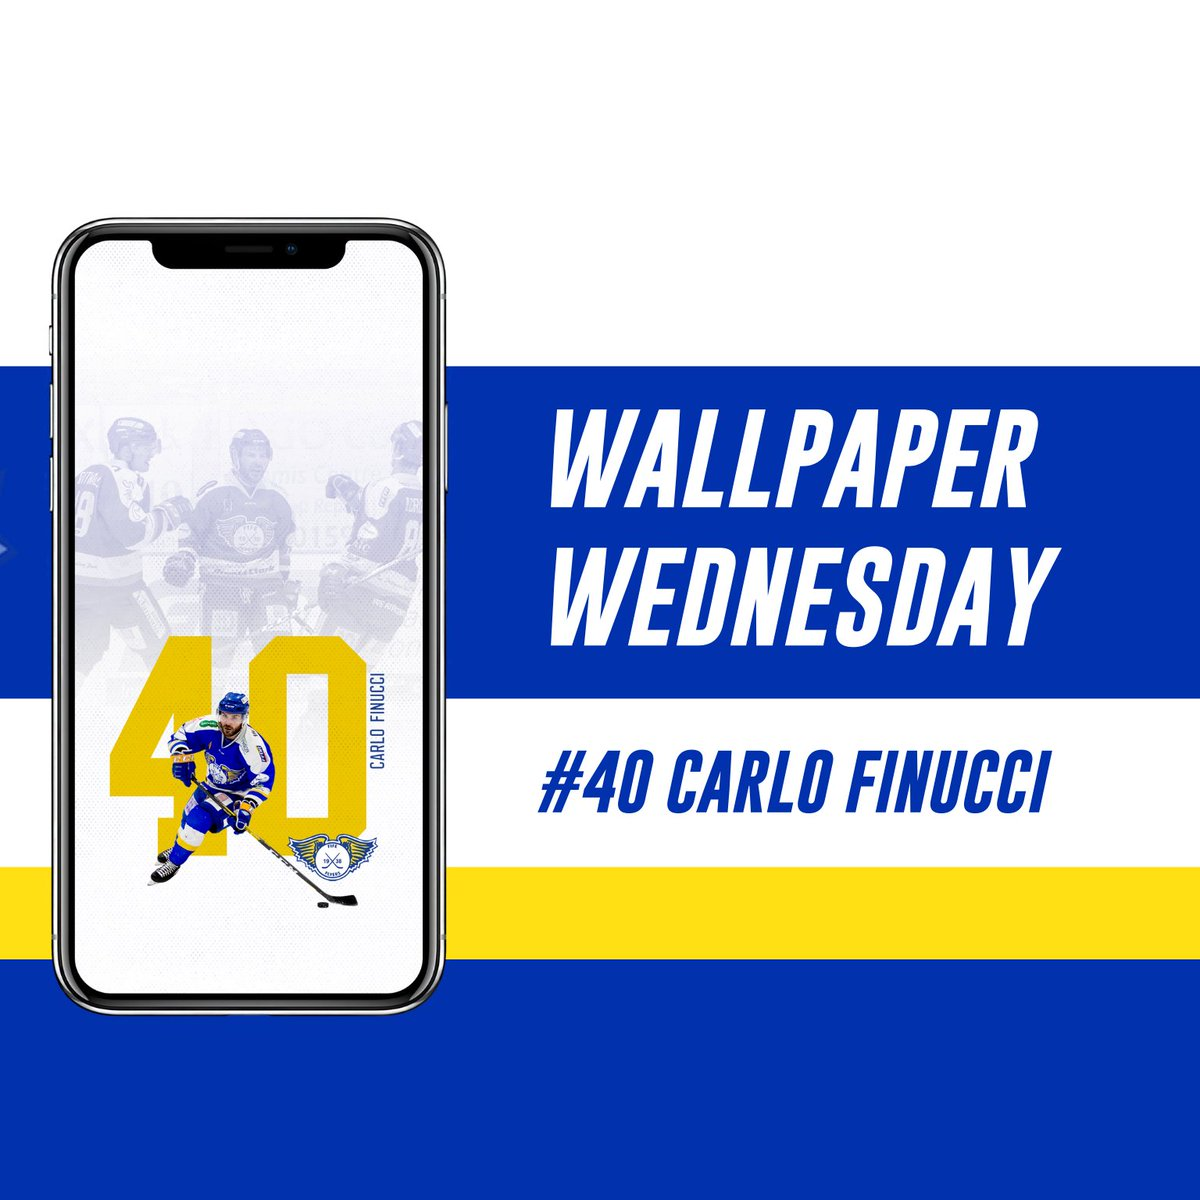 This week's #WallpaperWednesday features @nucci39   Over the coming weeks, we will be featuring a range of Flyers players - past and present. Let us know who you would like - if we have the images, we'll make it happen! #WeAreFife pic.twitter.com/5mCI9Jk3yc